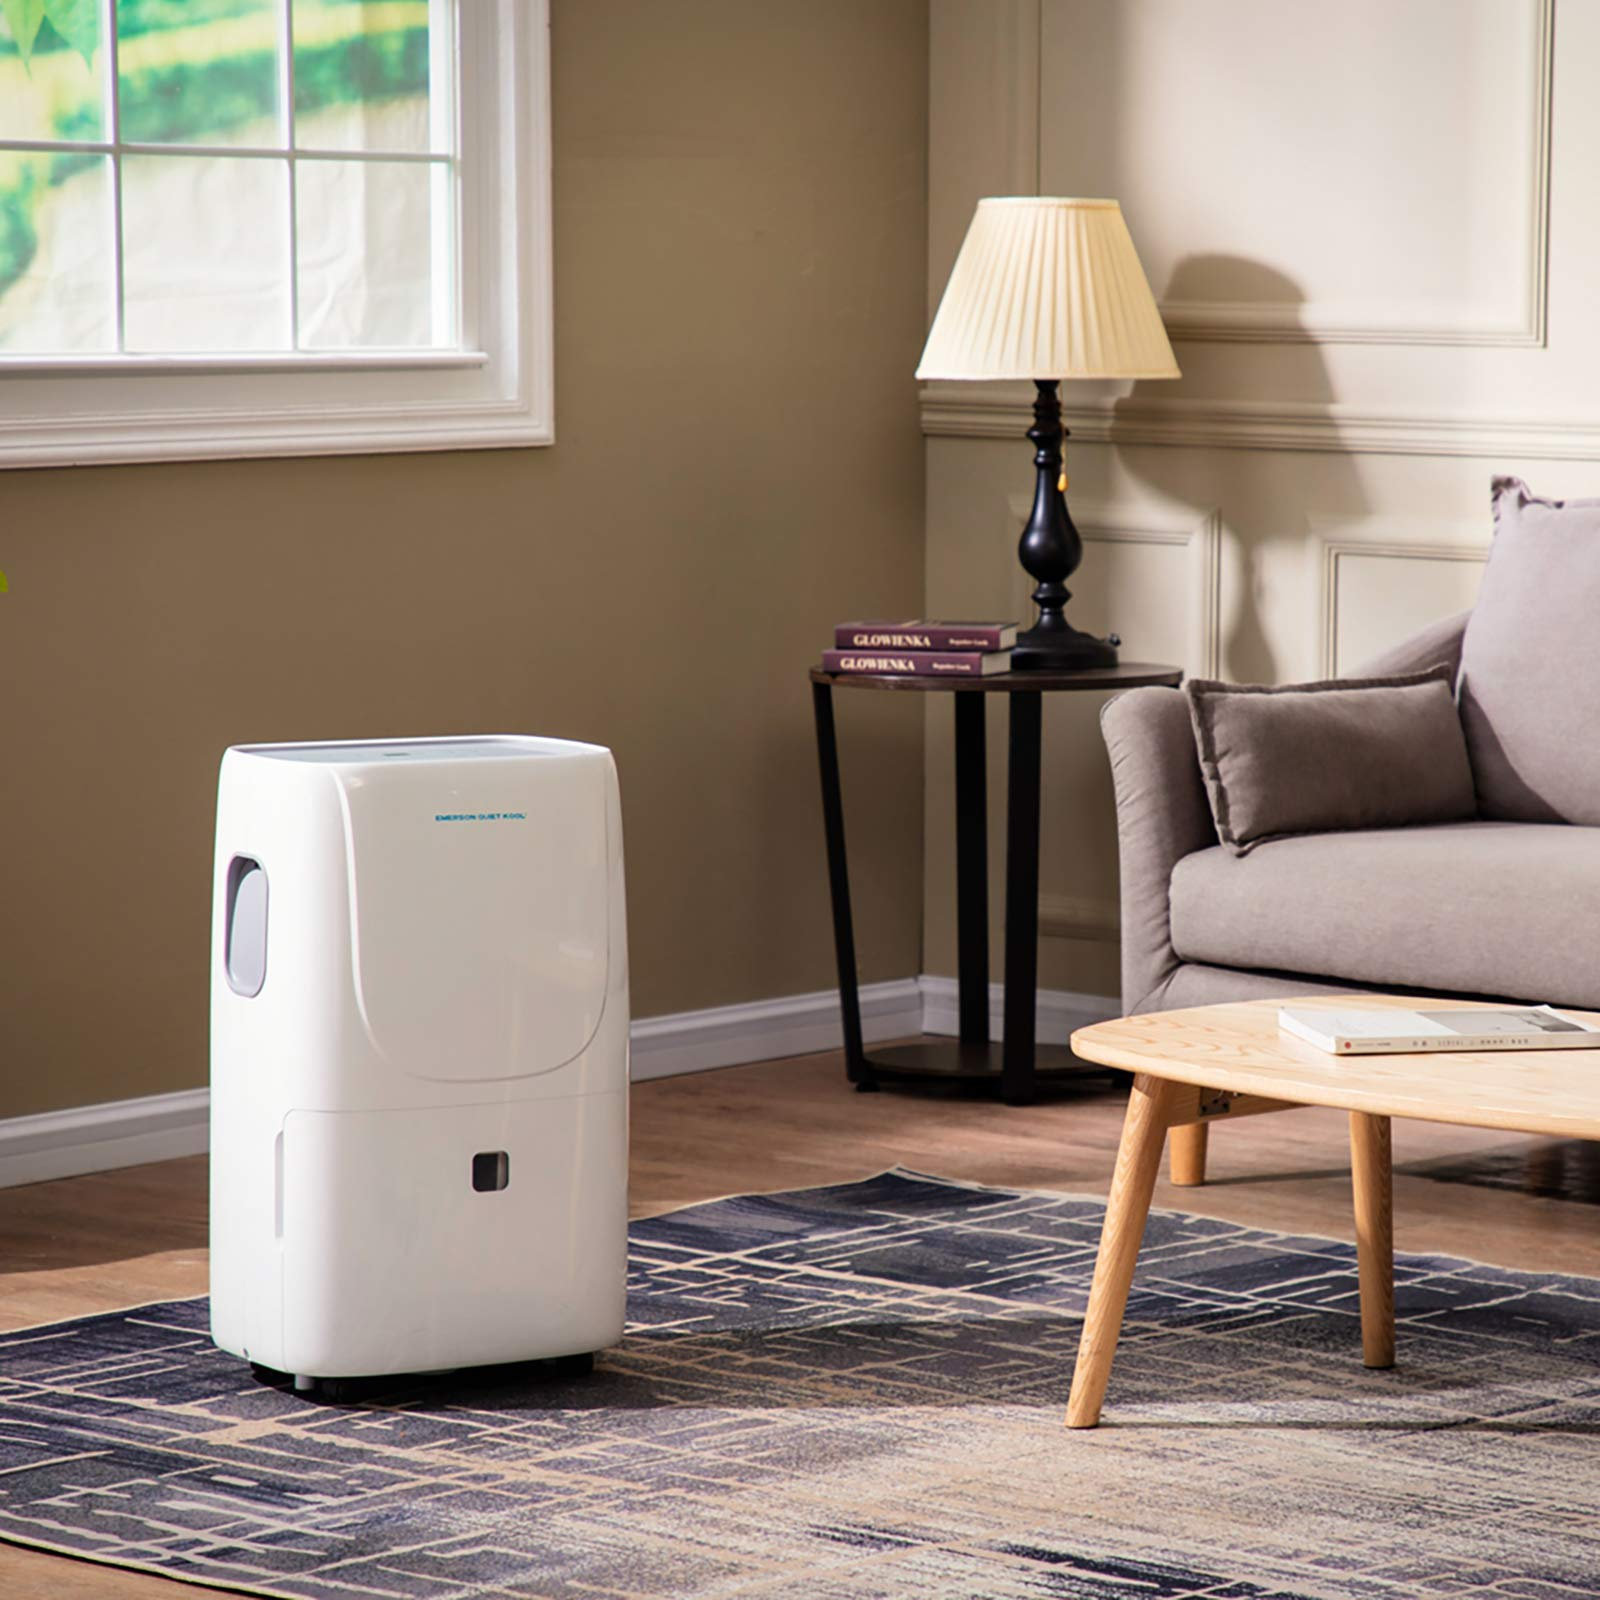 Emerson Quiet Kool High Efficiency 30-Pint Smart Dehumidifier with Wi-Fi and Voice Control, EAD30SE1, White